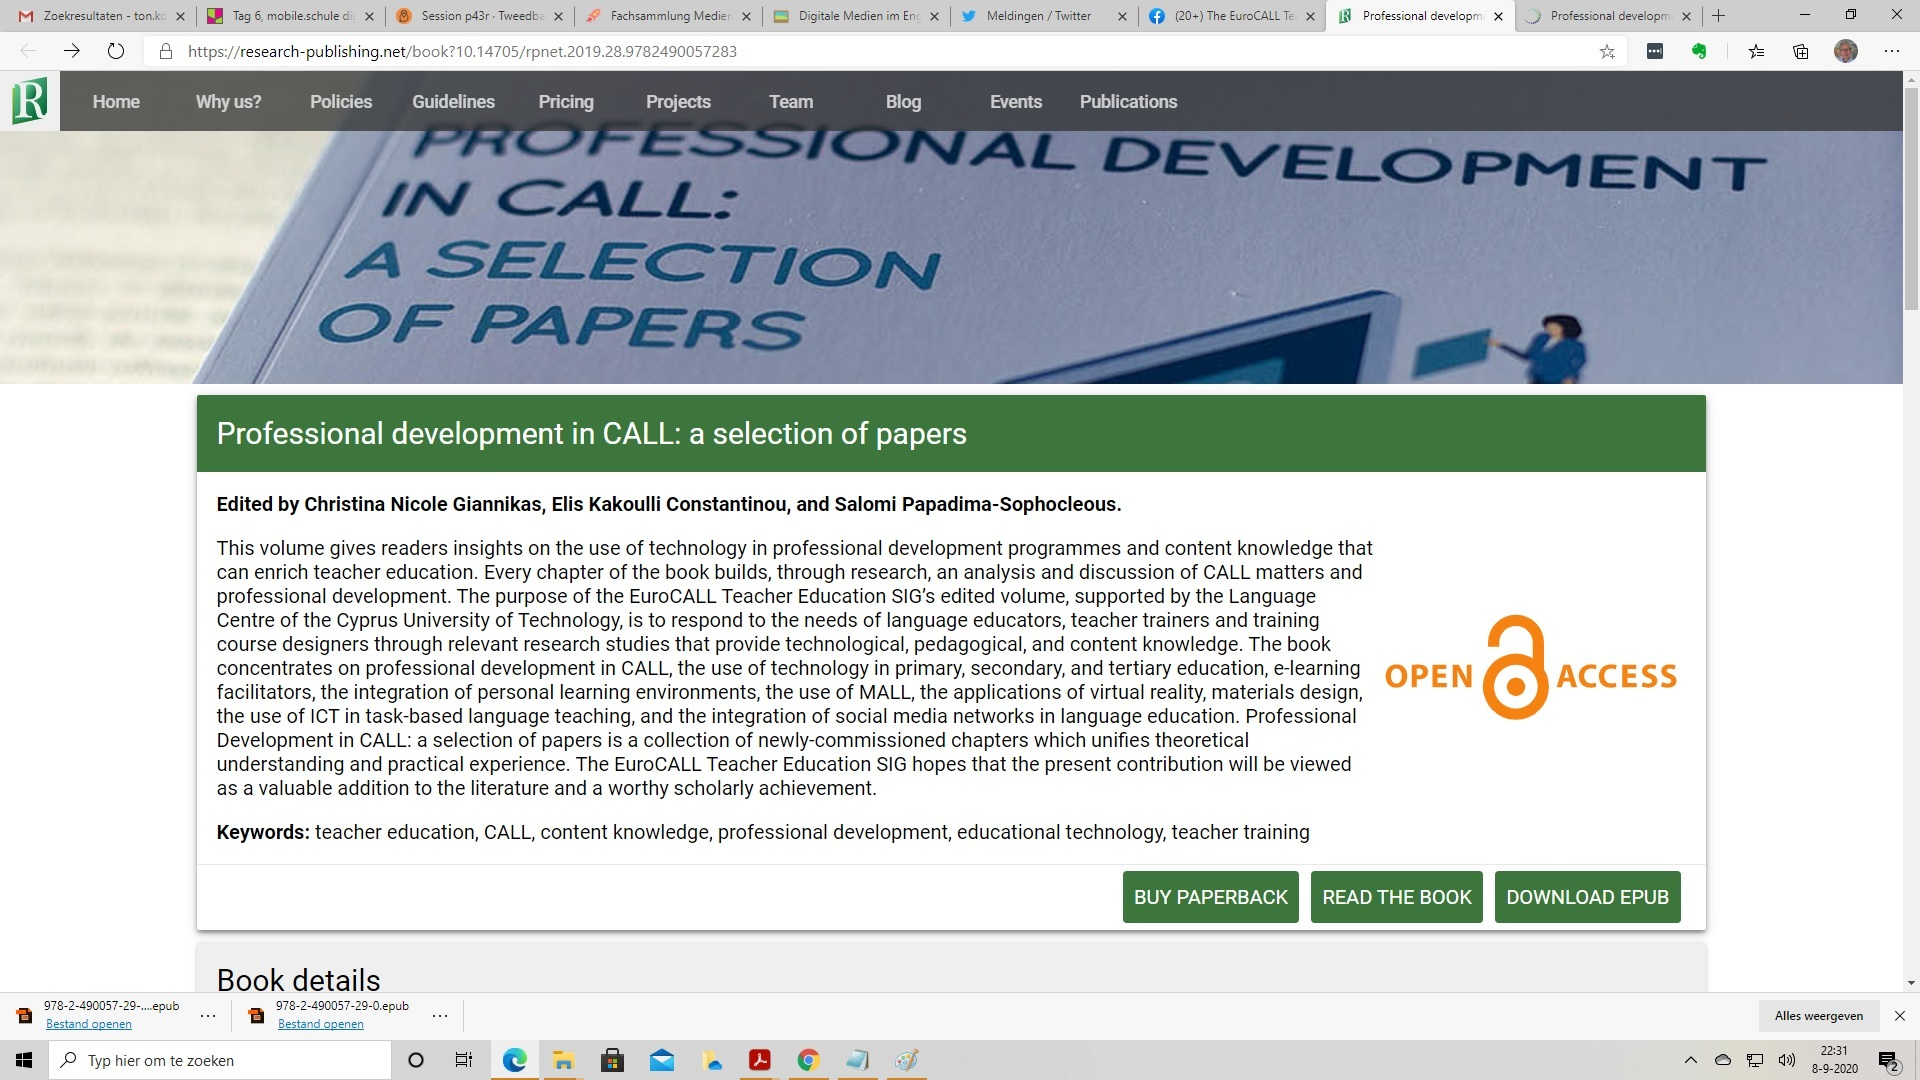 Professional development in CALL: a selection of papers